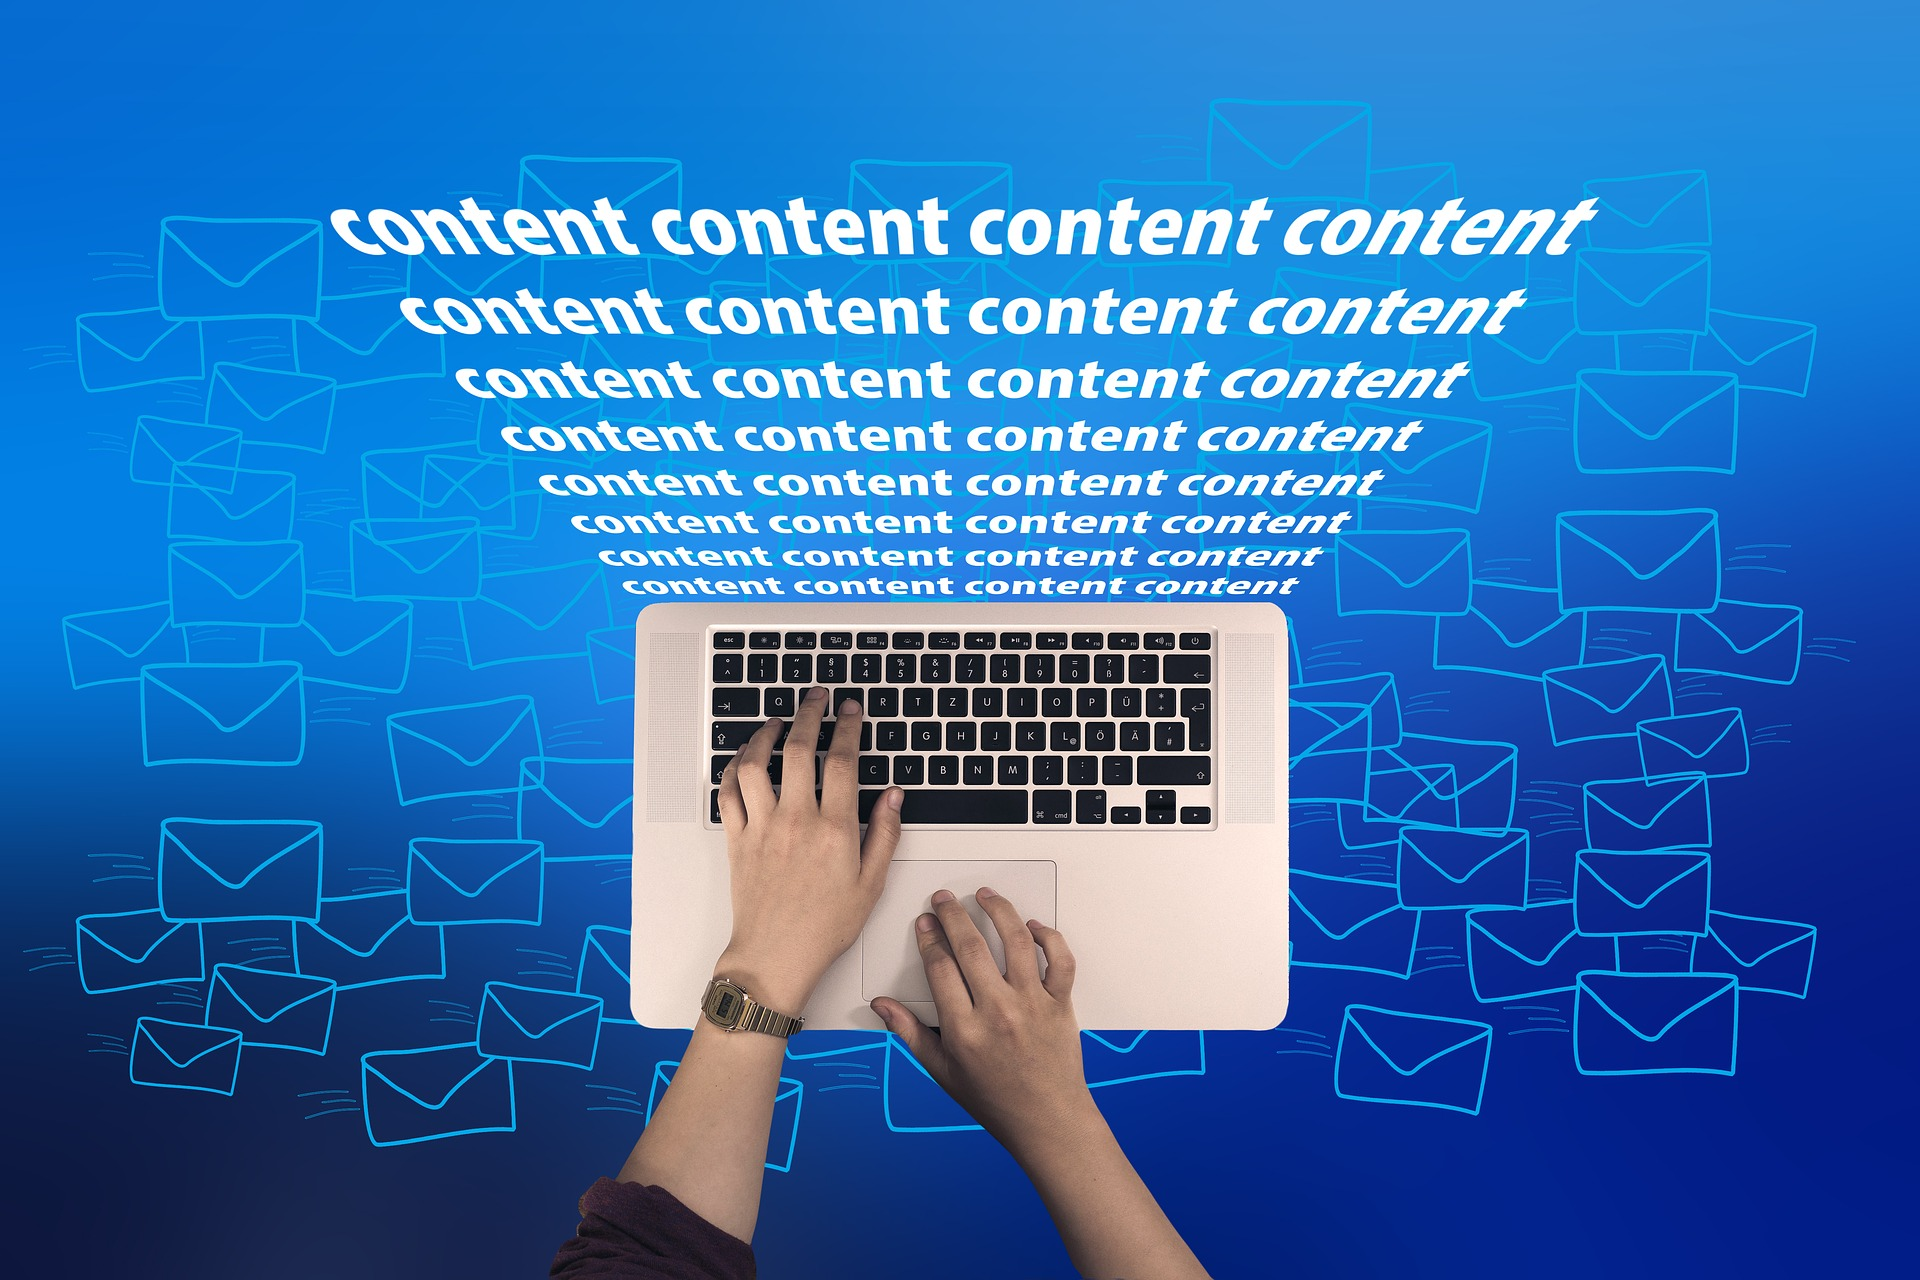 6 signs you need to revamp your content & SEO strategy